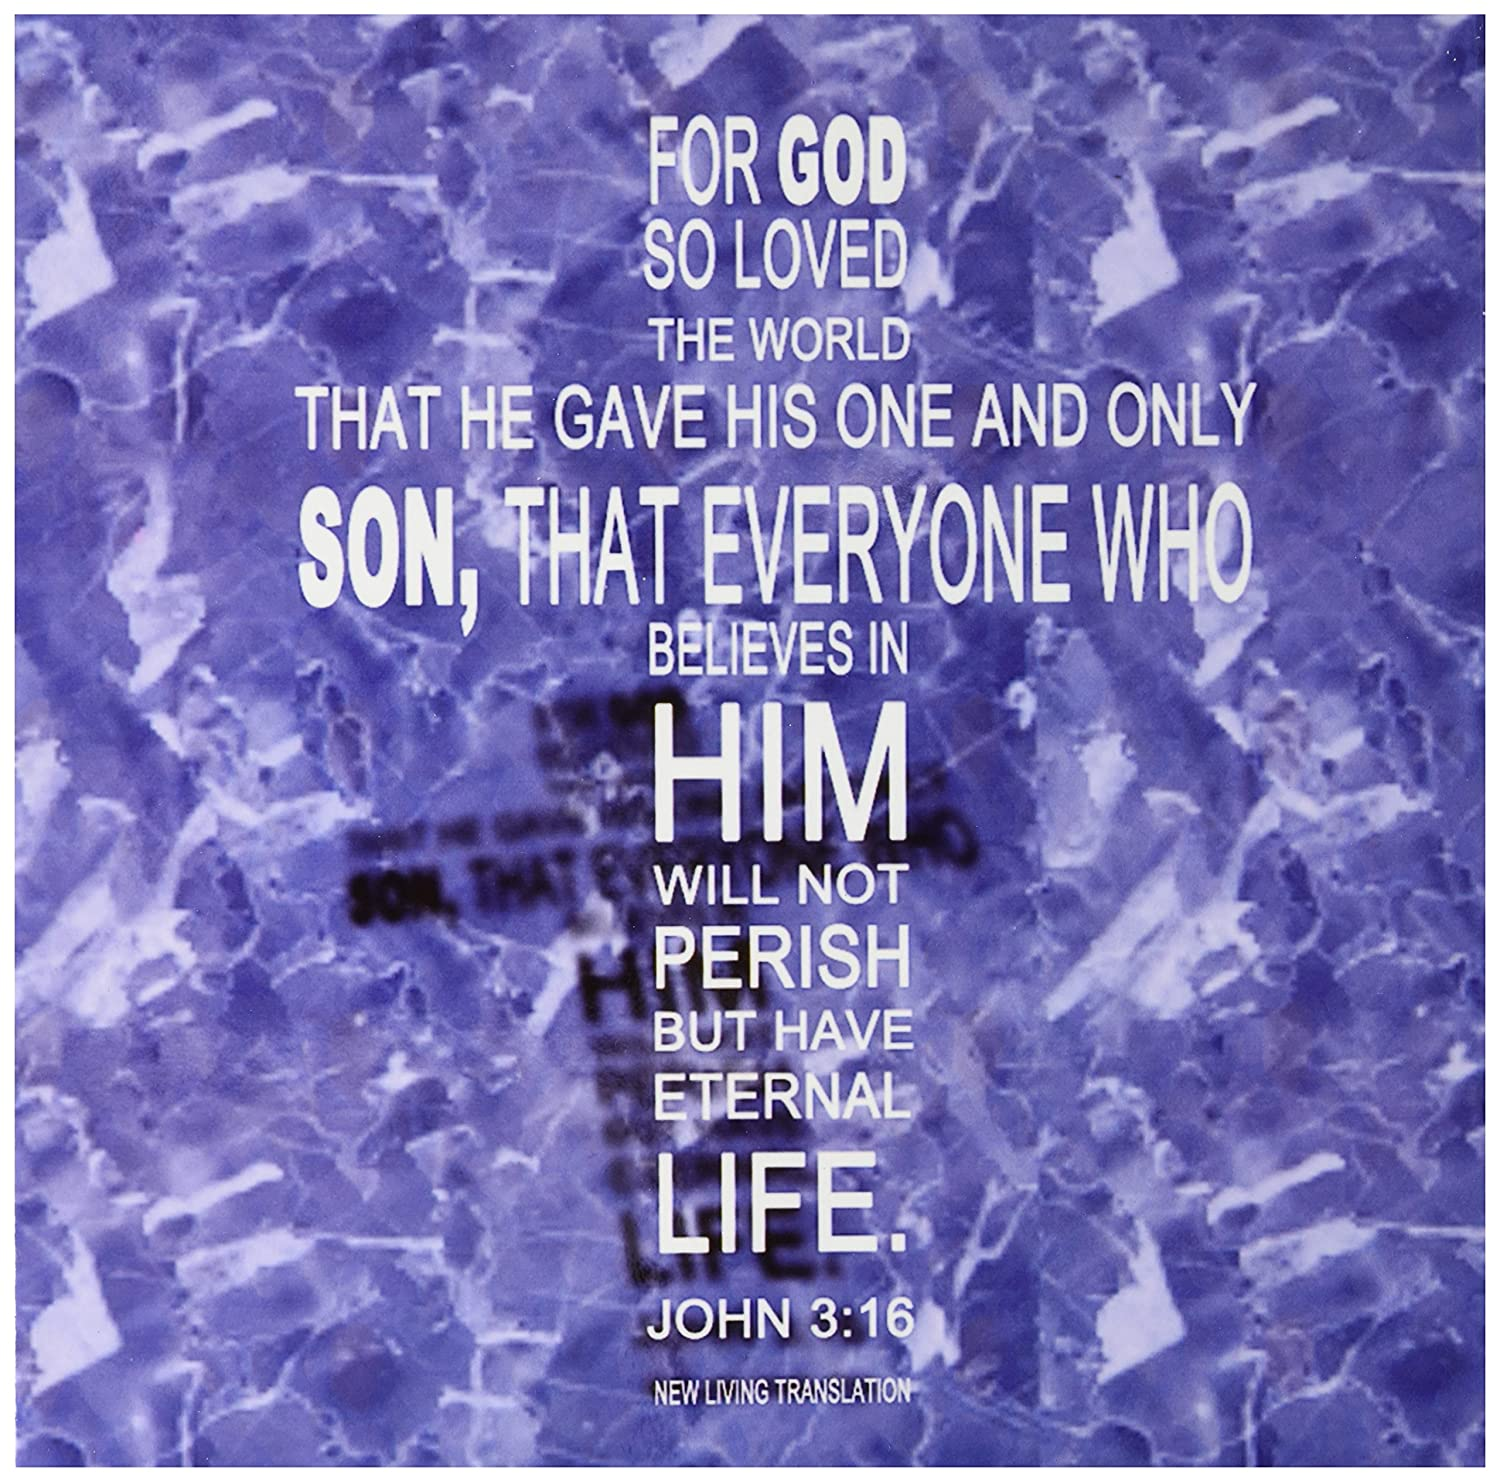 12-Inch 3dRose 777images John 3 16 bible verse in the form of a cross reflected Blue//Grey Granite Tile